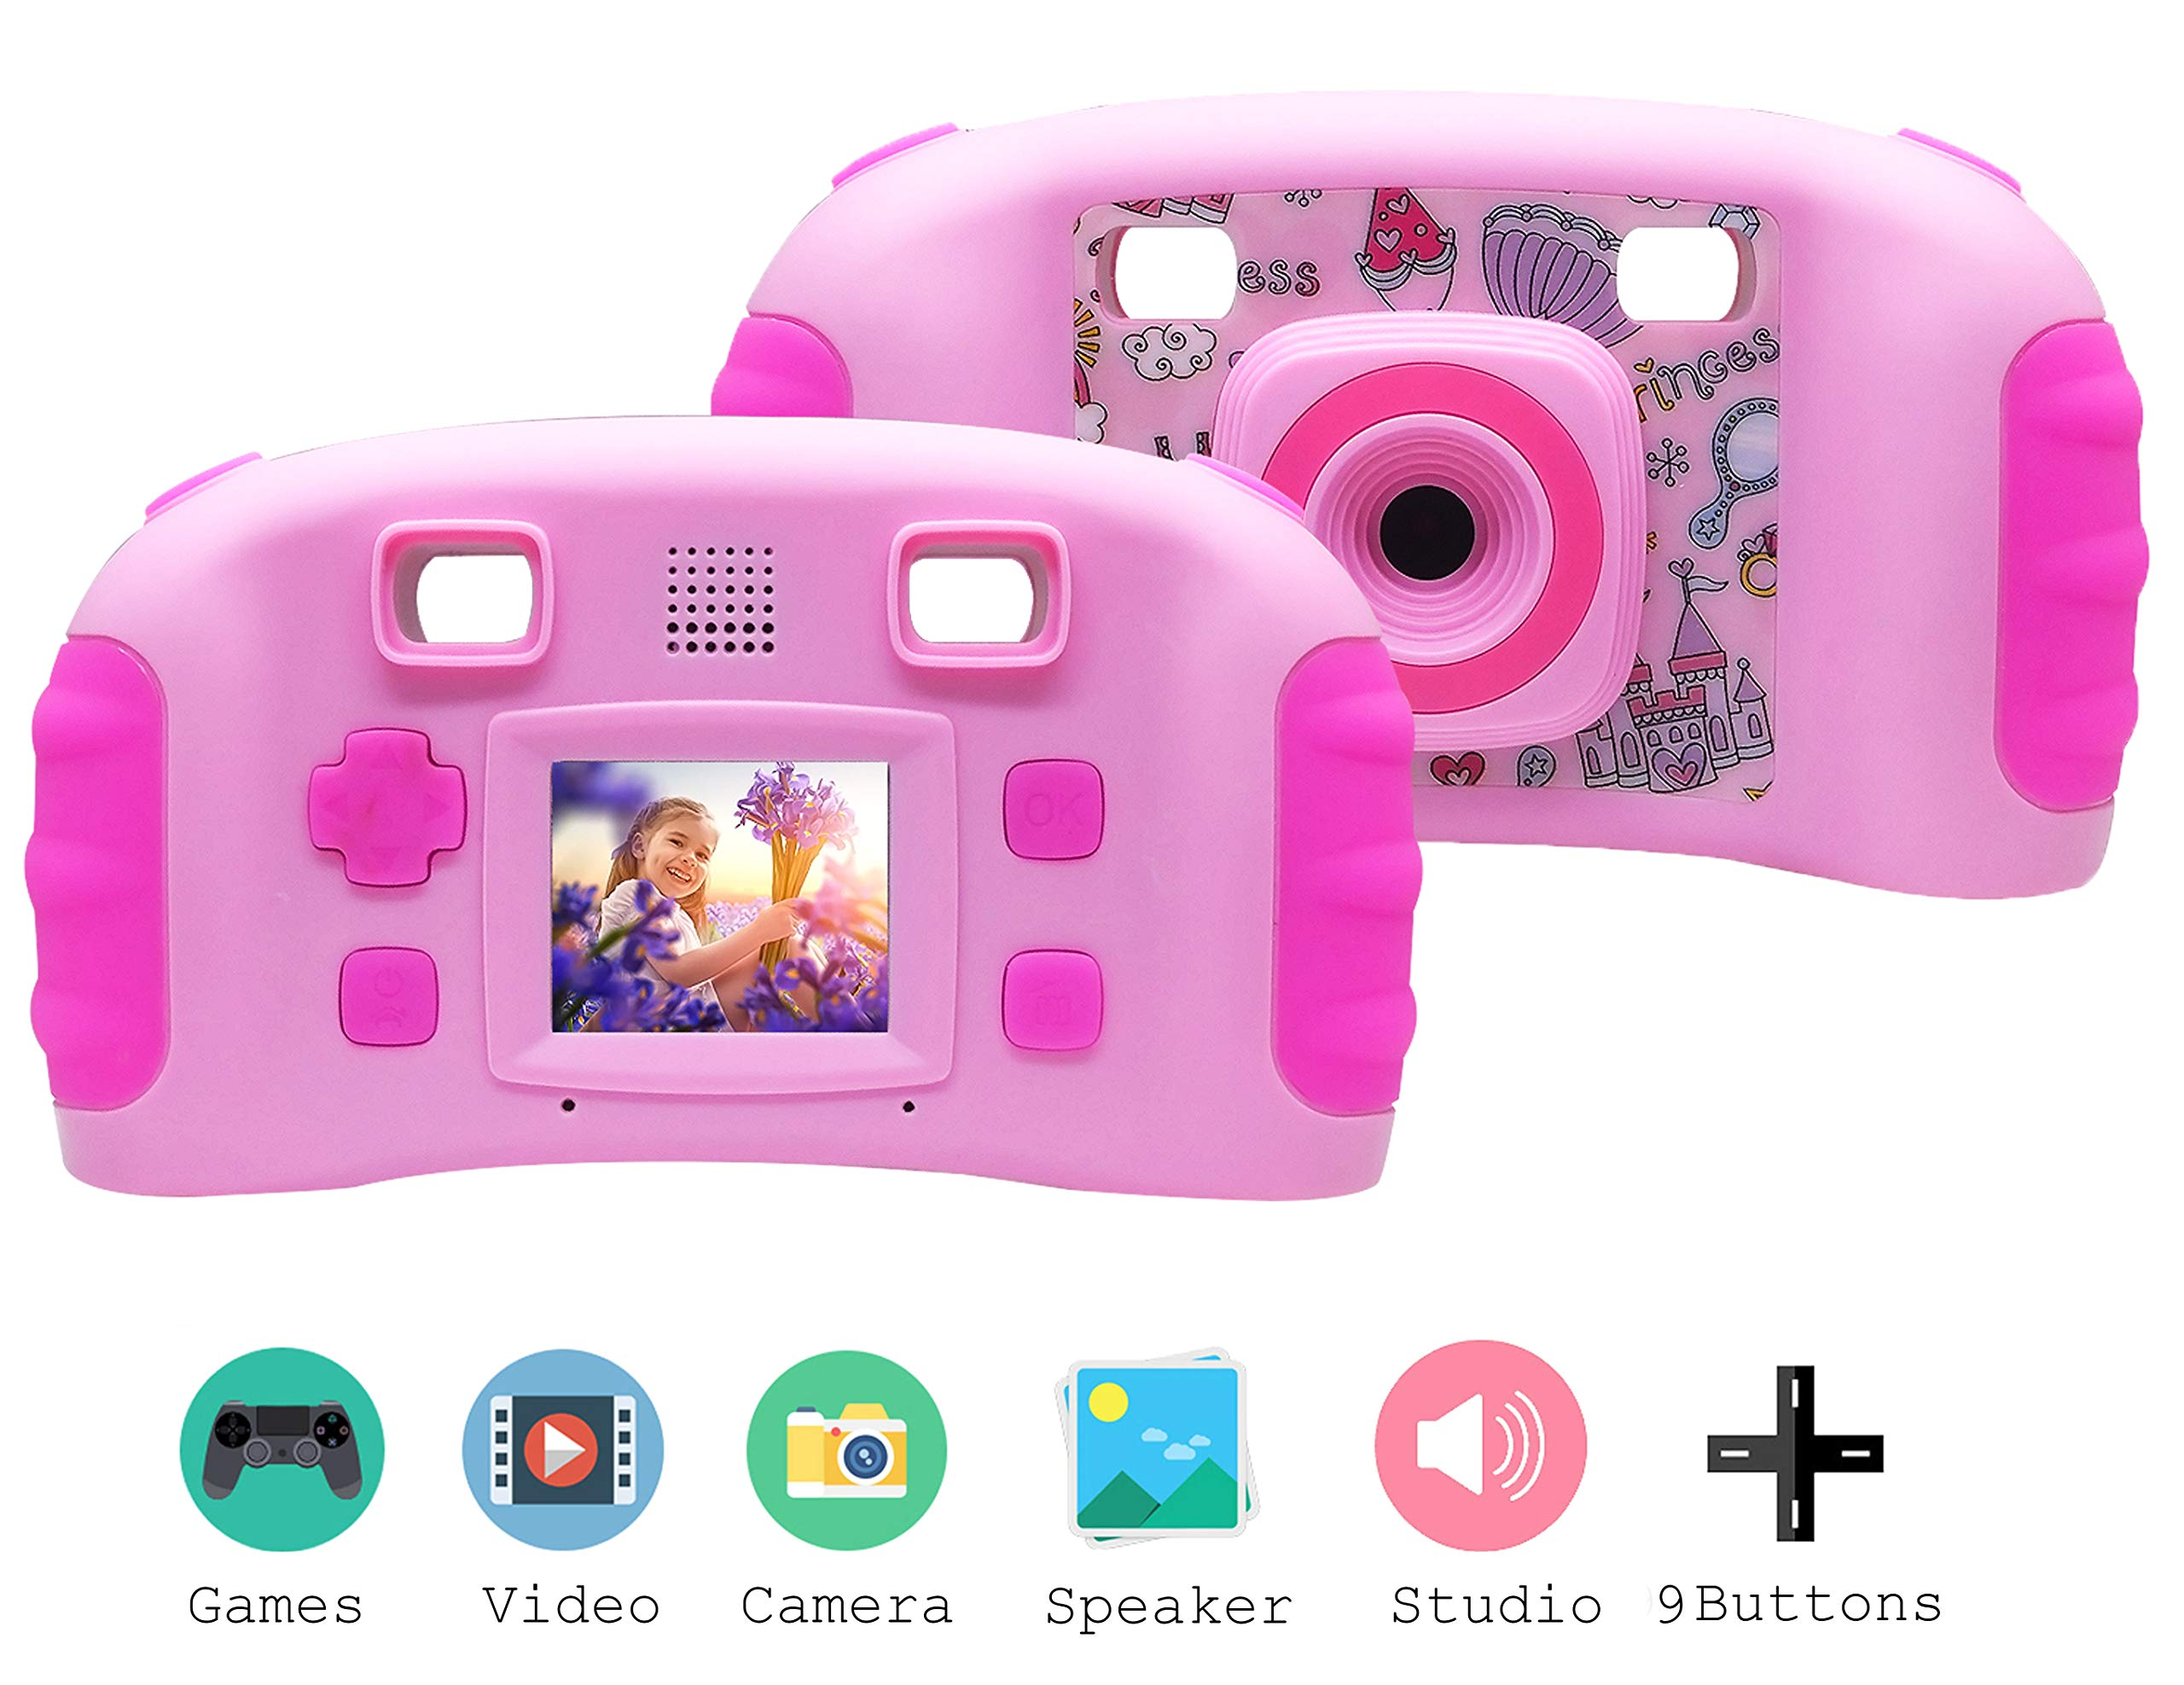 Vetté Digital Camera for Kids with 16GB MicroSD Card - Multifunctional Kids Camera - 2X Zoom, 720 HD Video Quality, 1.8 TFT LCD Screen,Games, Frames, Photo Editing and Voice Recorder Camera (Pink) by Vetté (Image #2)